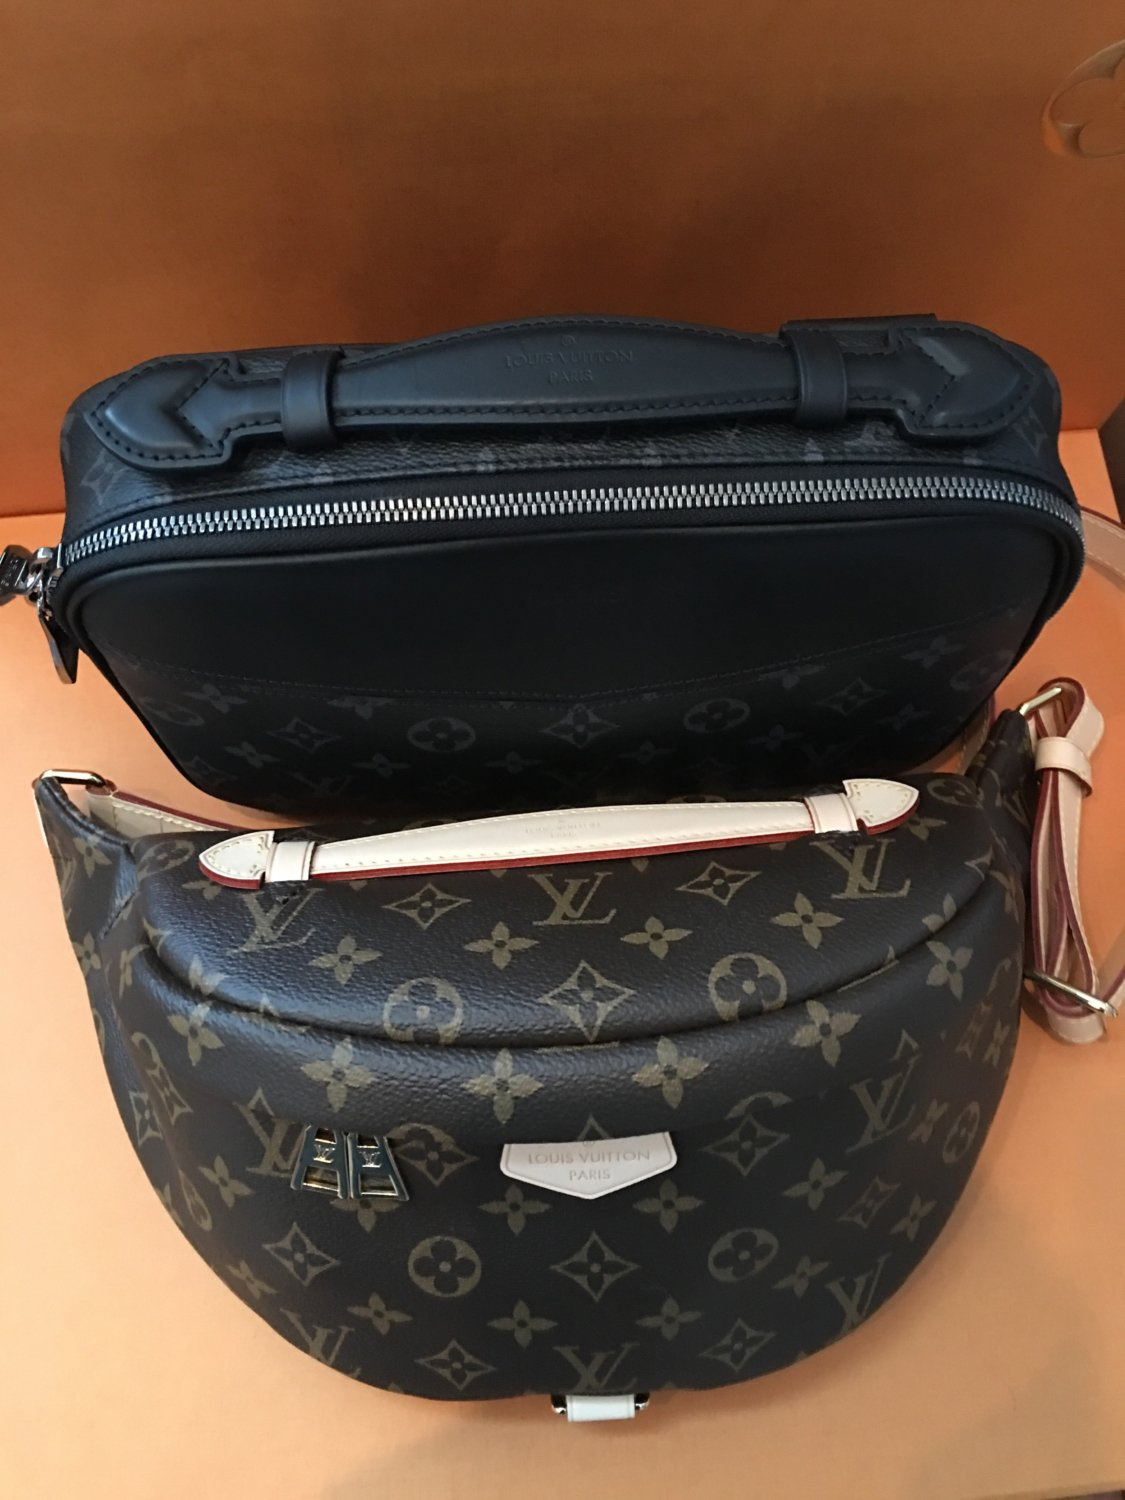 Louis-Vuitton-Bum-Bag-15